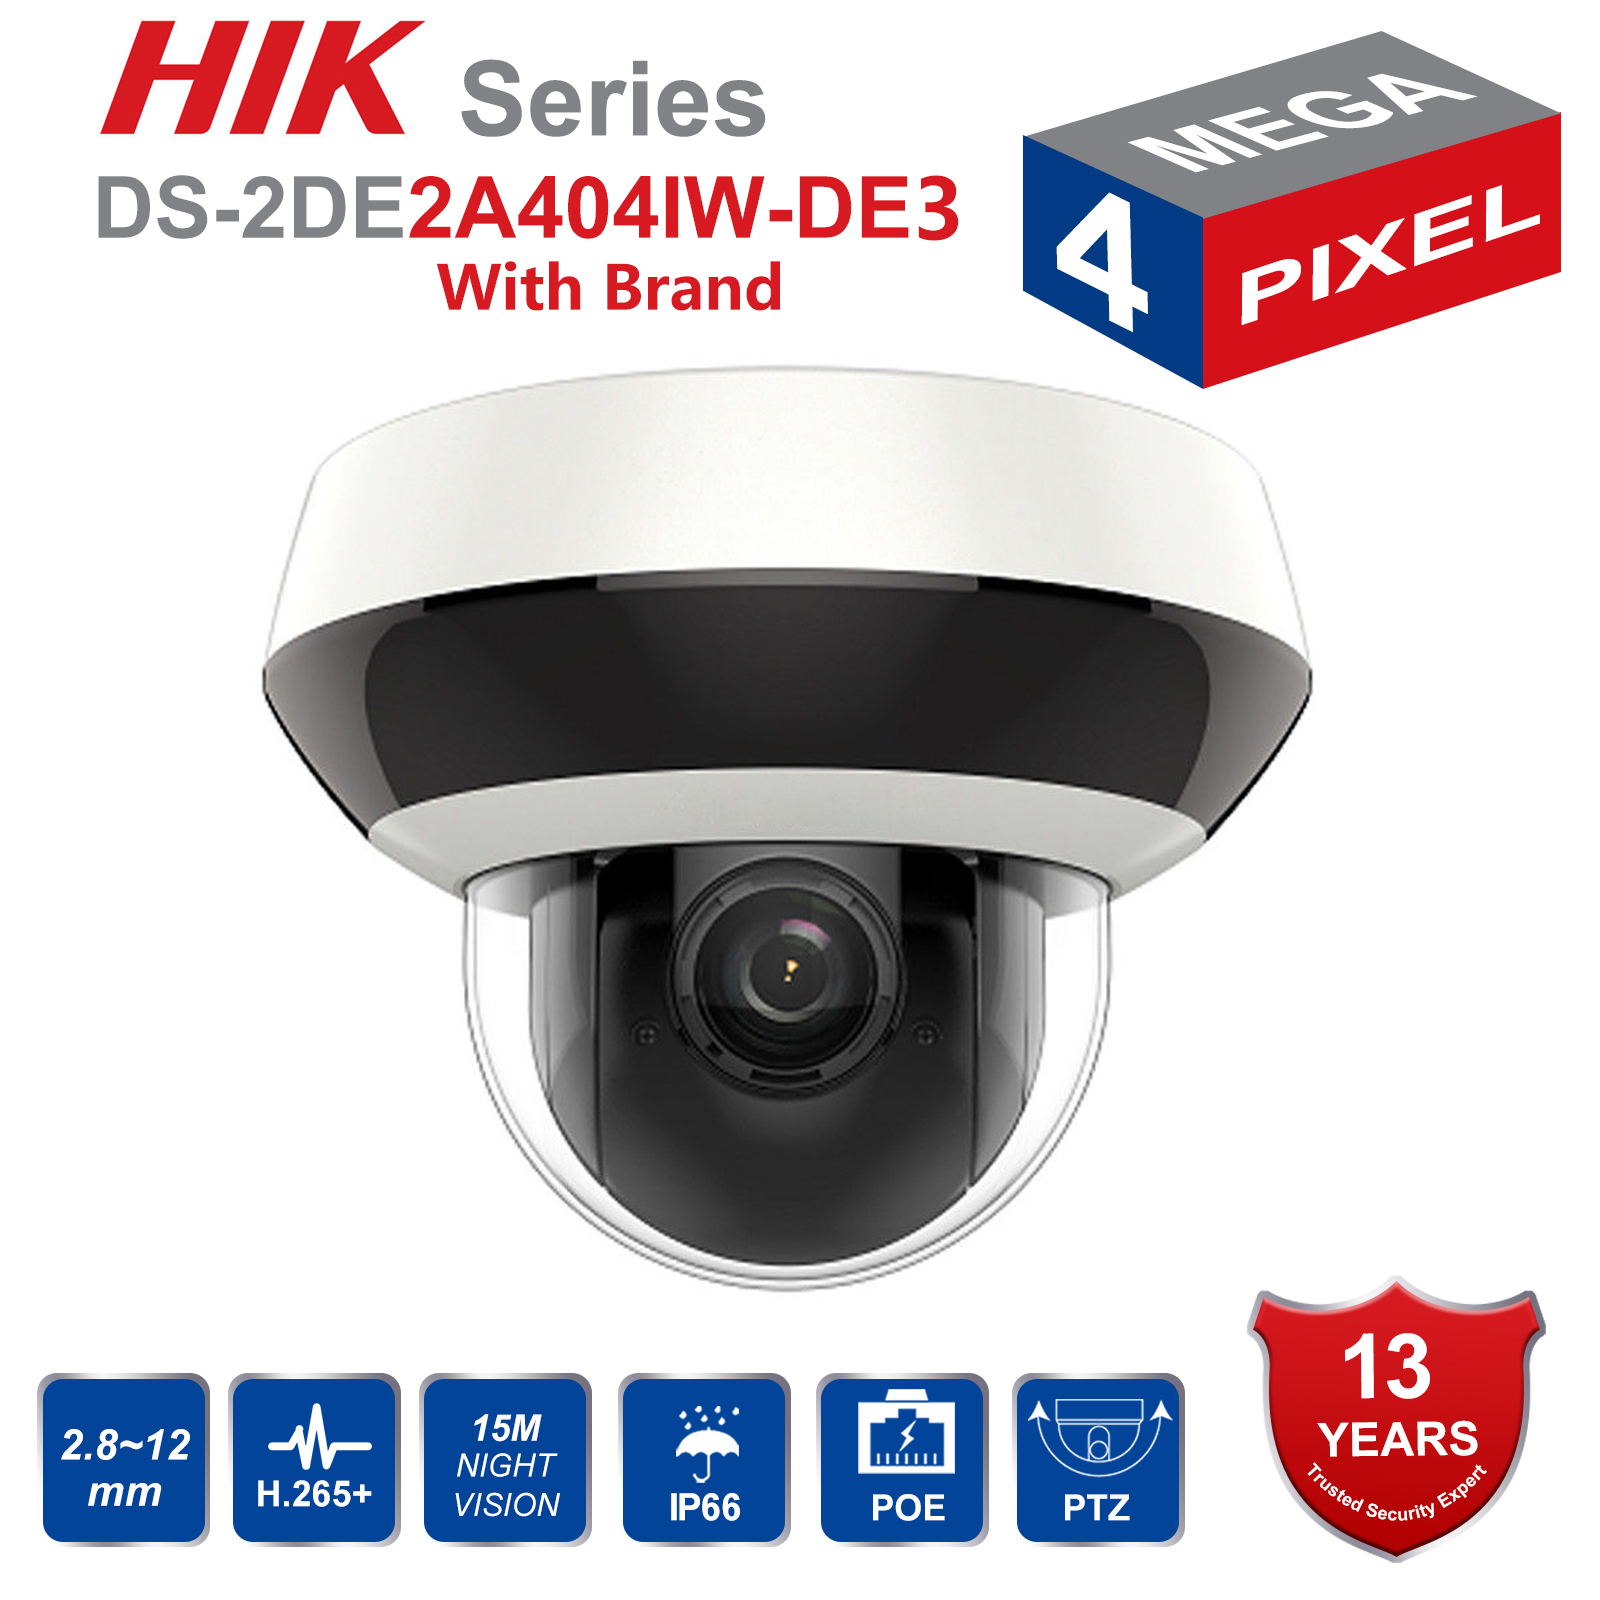 Hik PTZ IP Camera H.265 DS-2DE2A404IW-DE3 4MP 4X Zoom 2.8-12mm lens Network Video Surveillance POE Dome CCTV Camera Audio